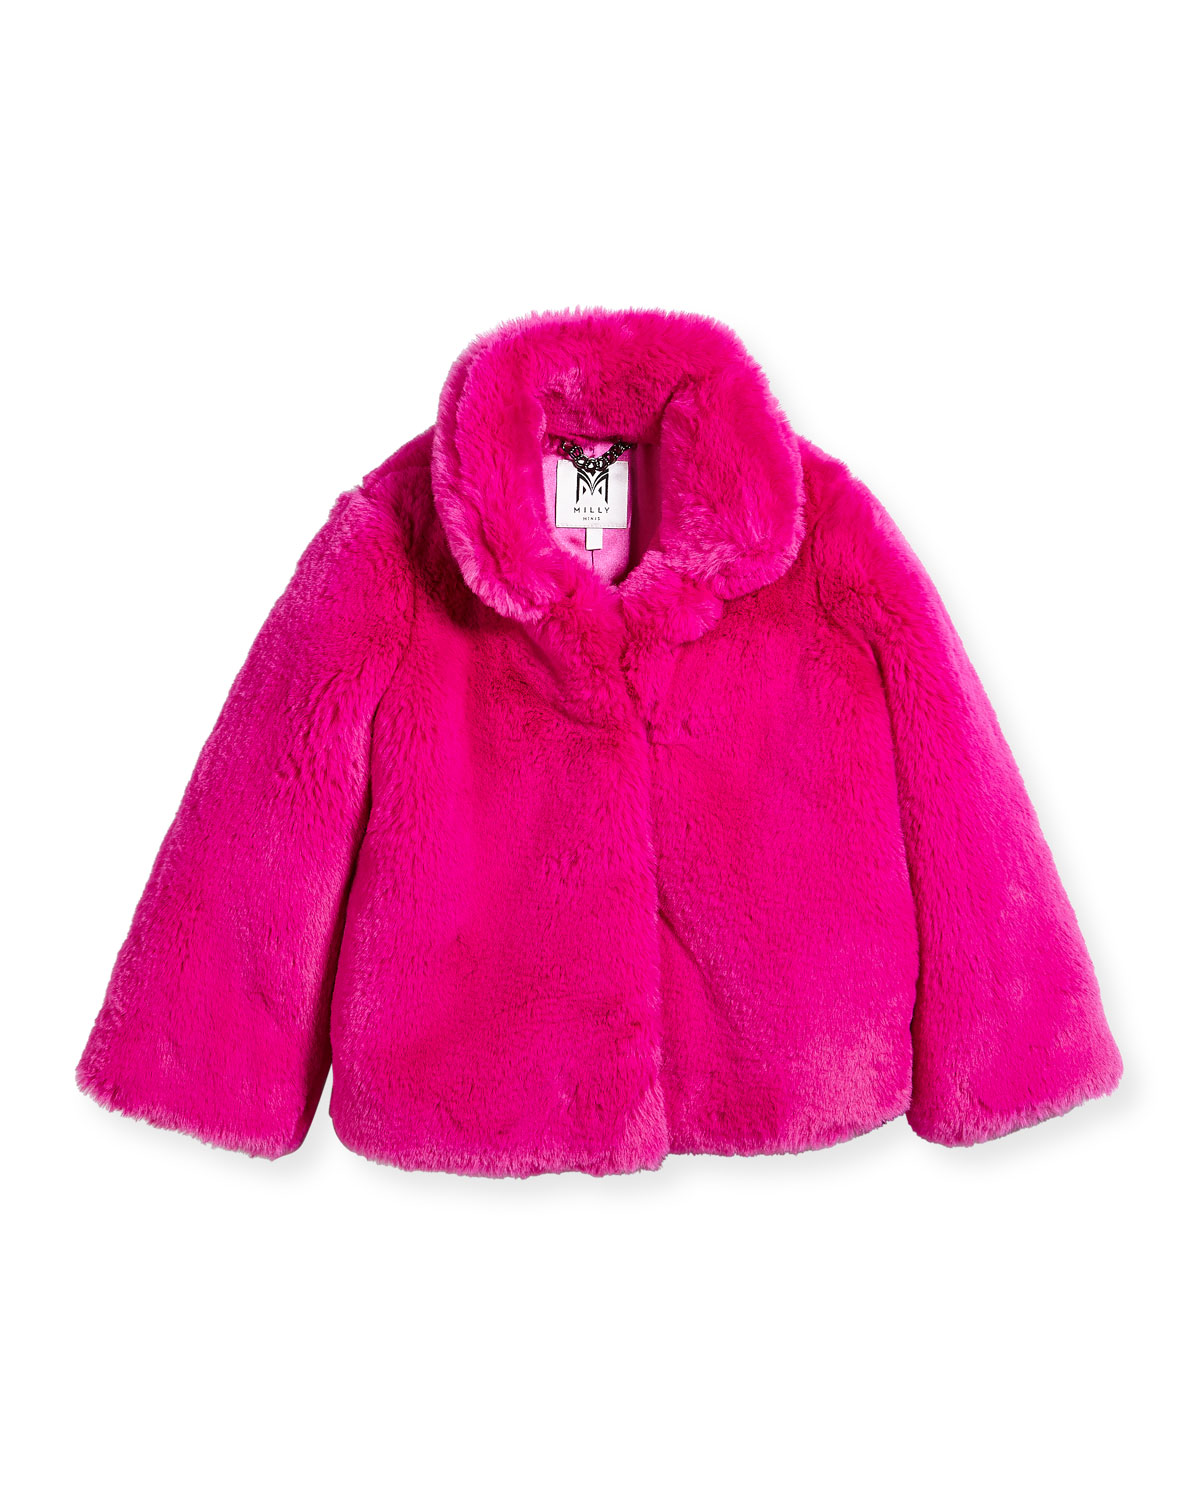 Faux-Fur Jacket, Size 4-7